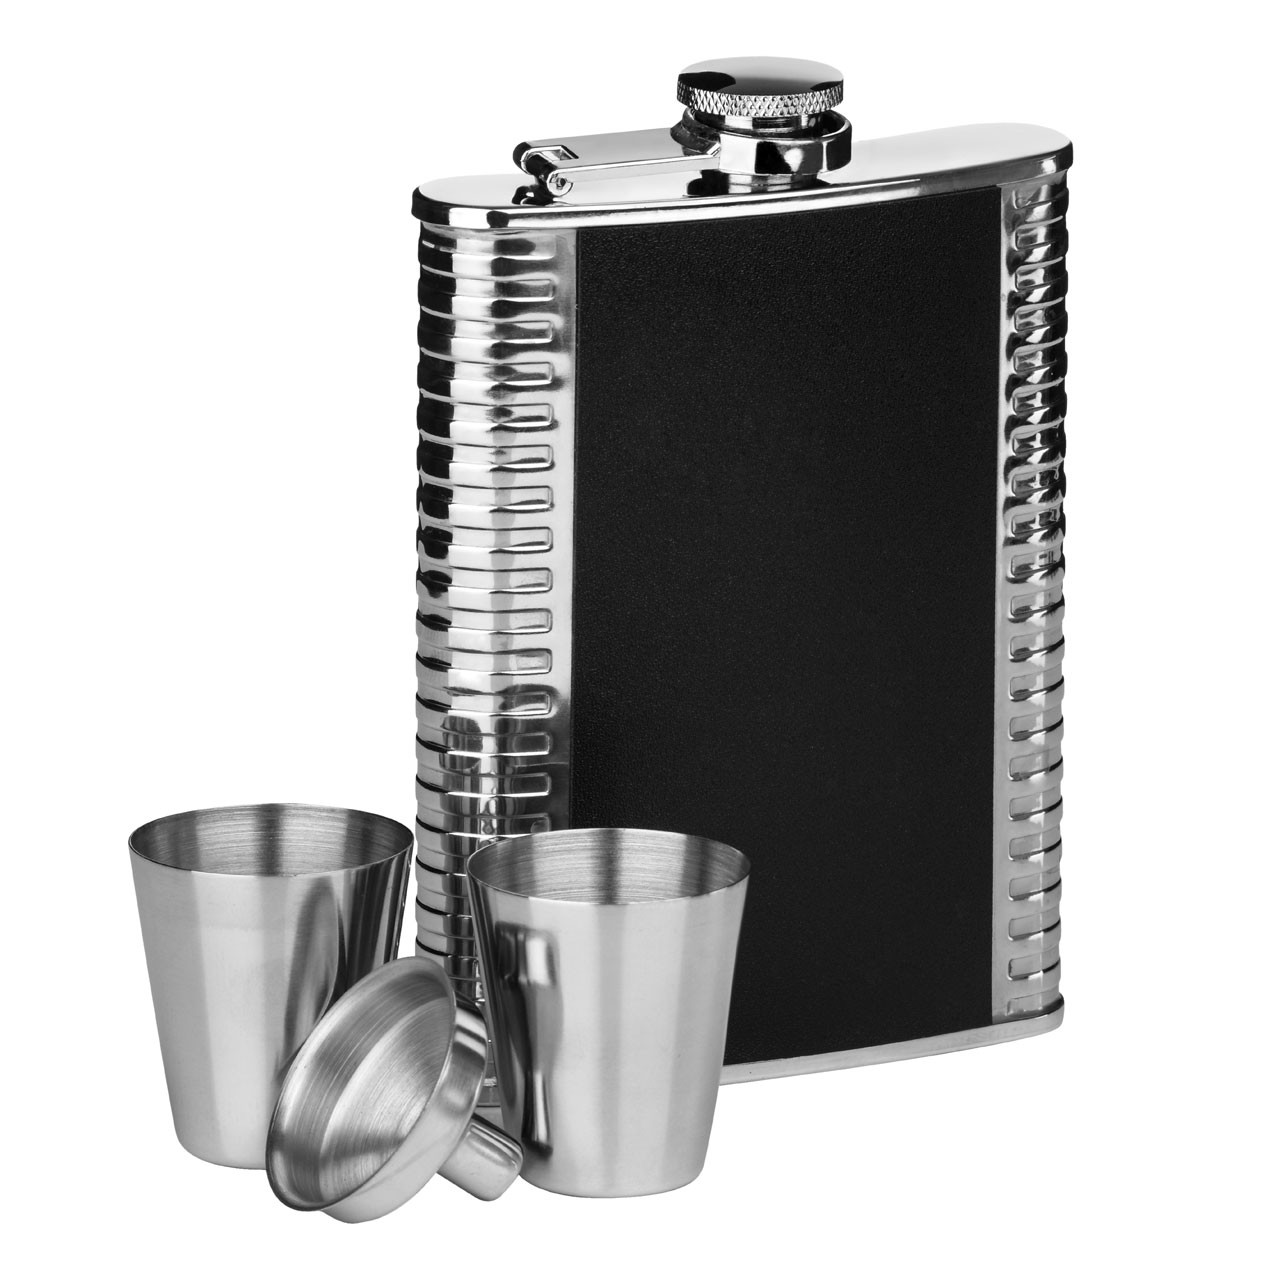 Ribbed Stainless Steel Hip Flask Set, 8 oz - Black